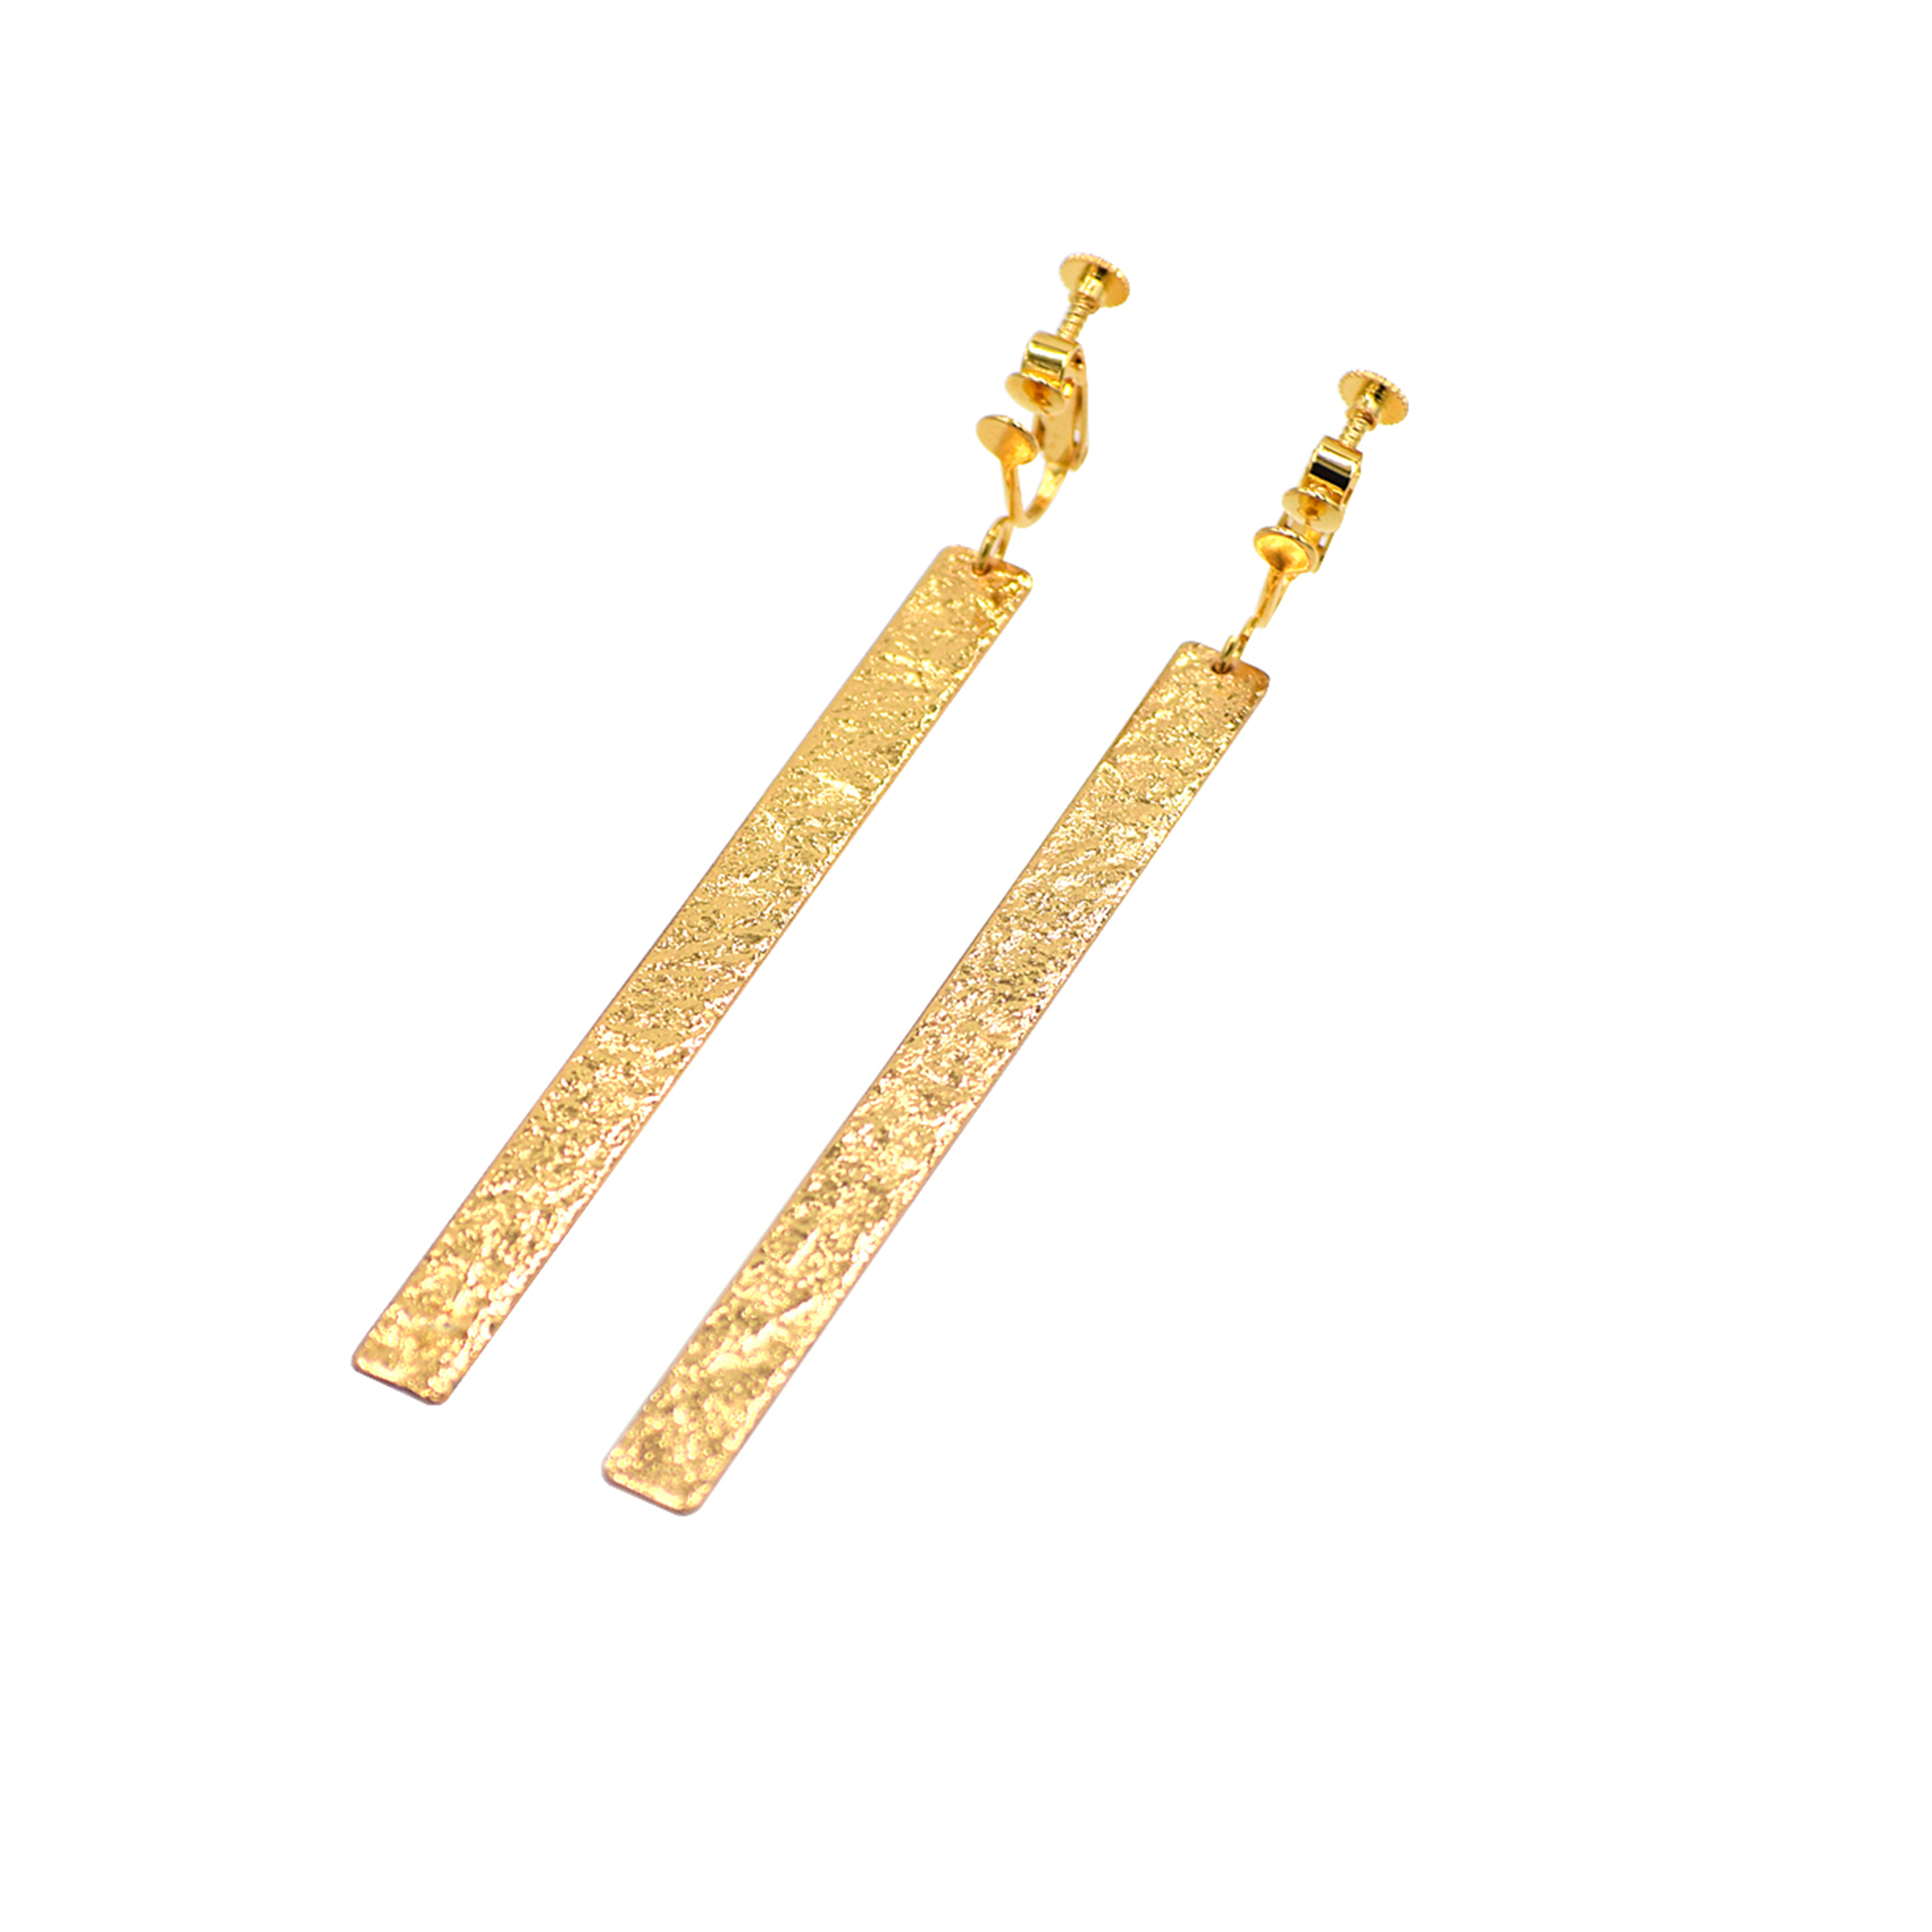 《イヤリング》TIN BREATH Earrings 7×80mm Gold